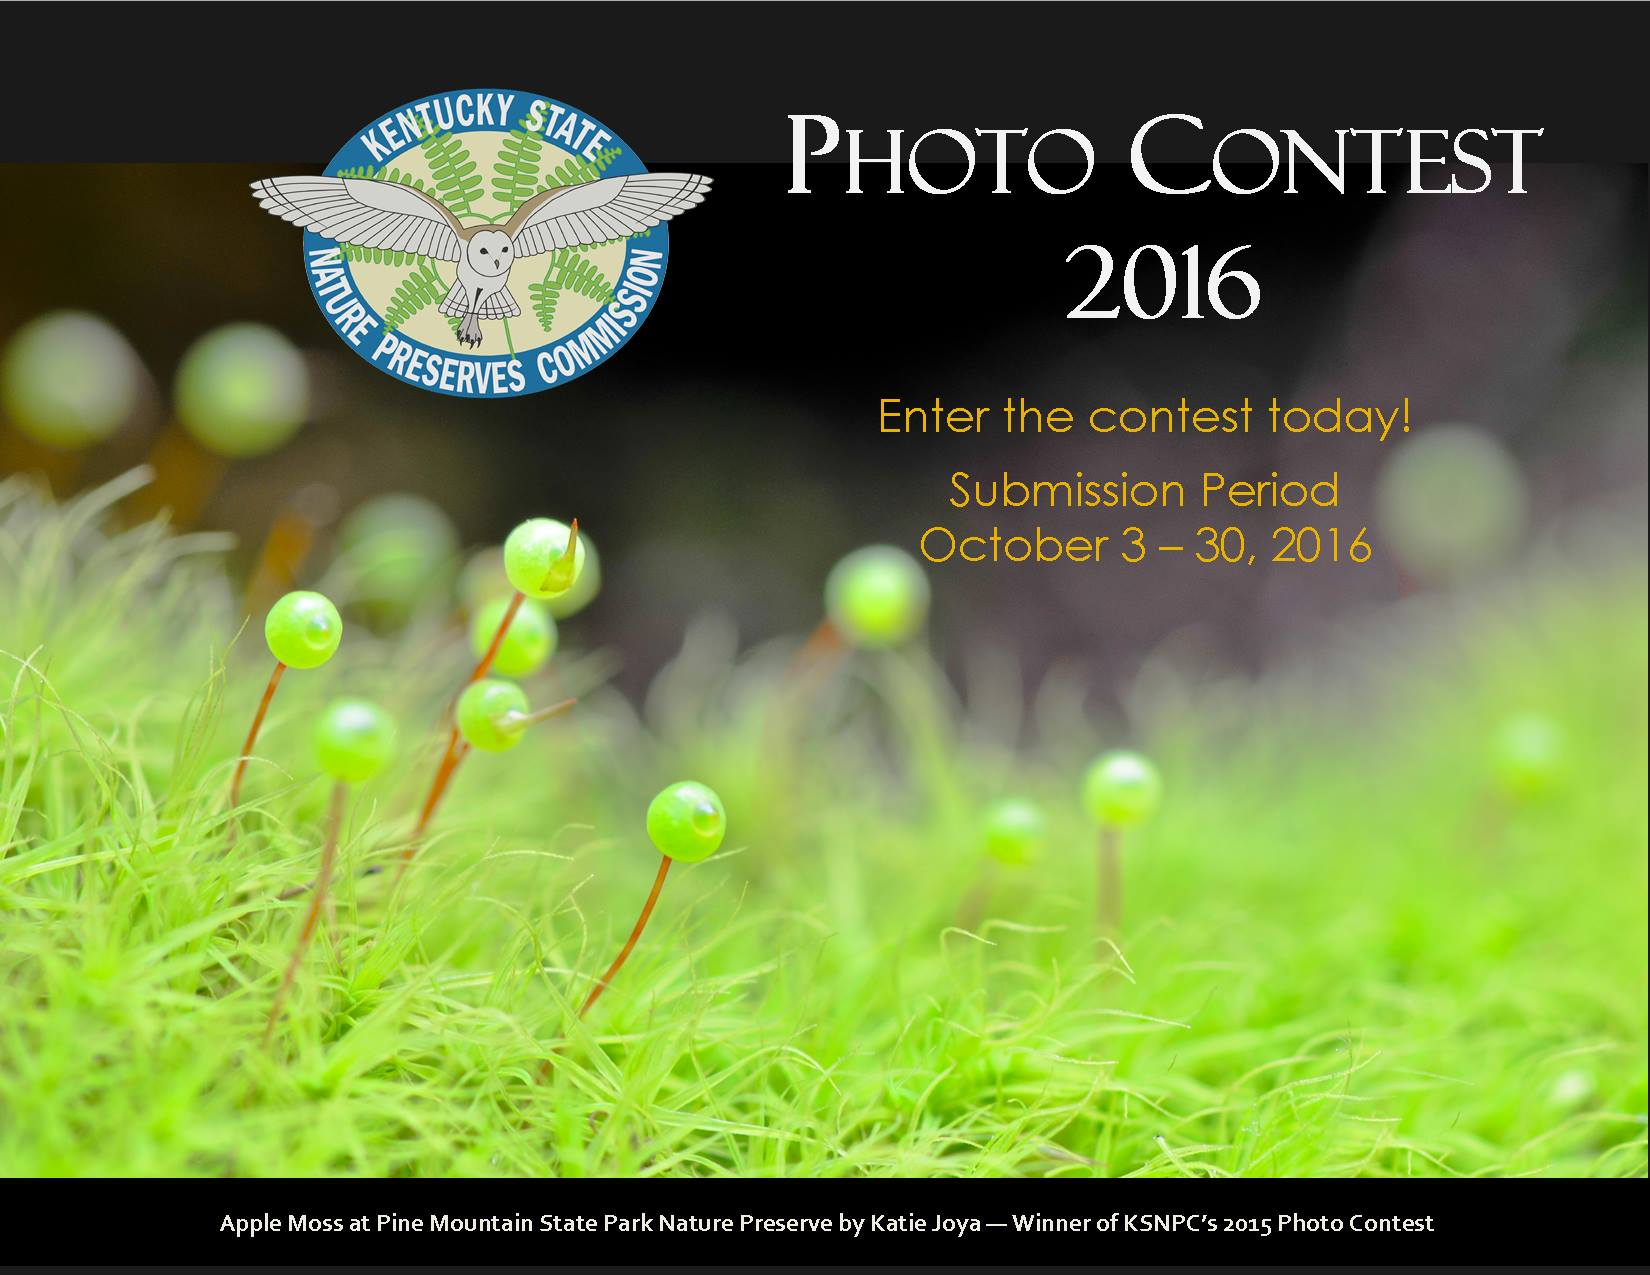 Kentucky State Nature Preserves Commission announces its 2016 photo contest